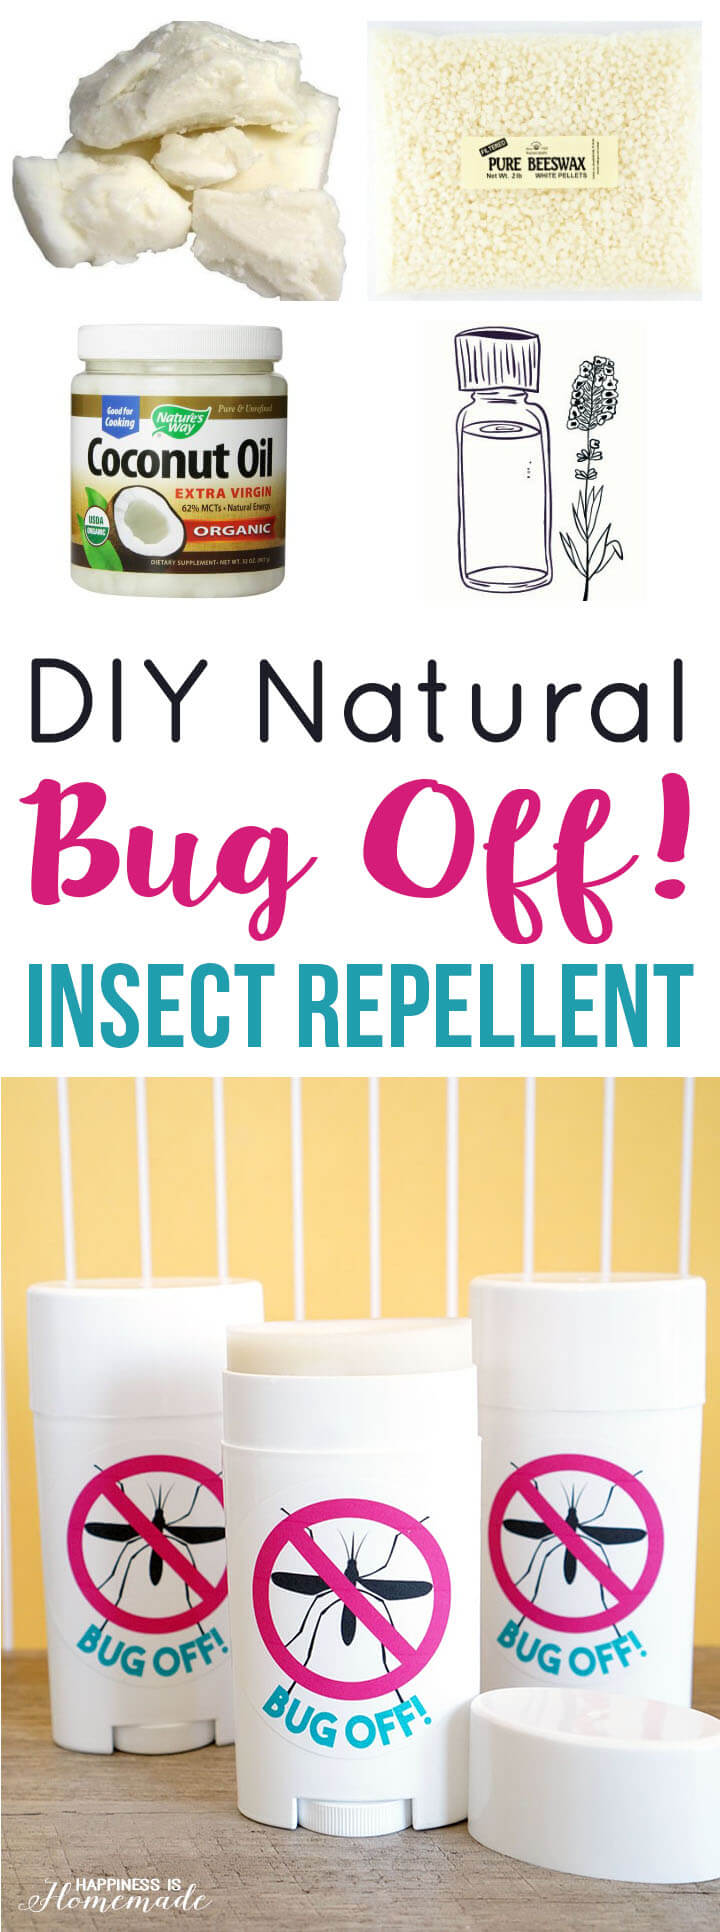 DIY Natural Bug Off Insect Repellent Sticks